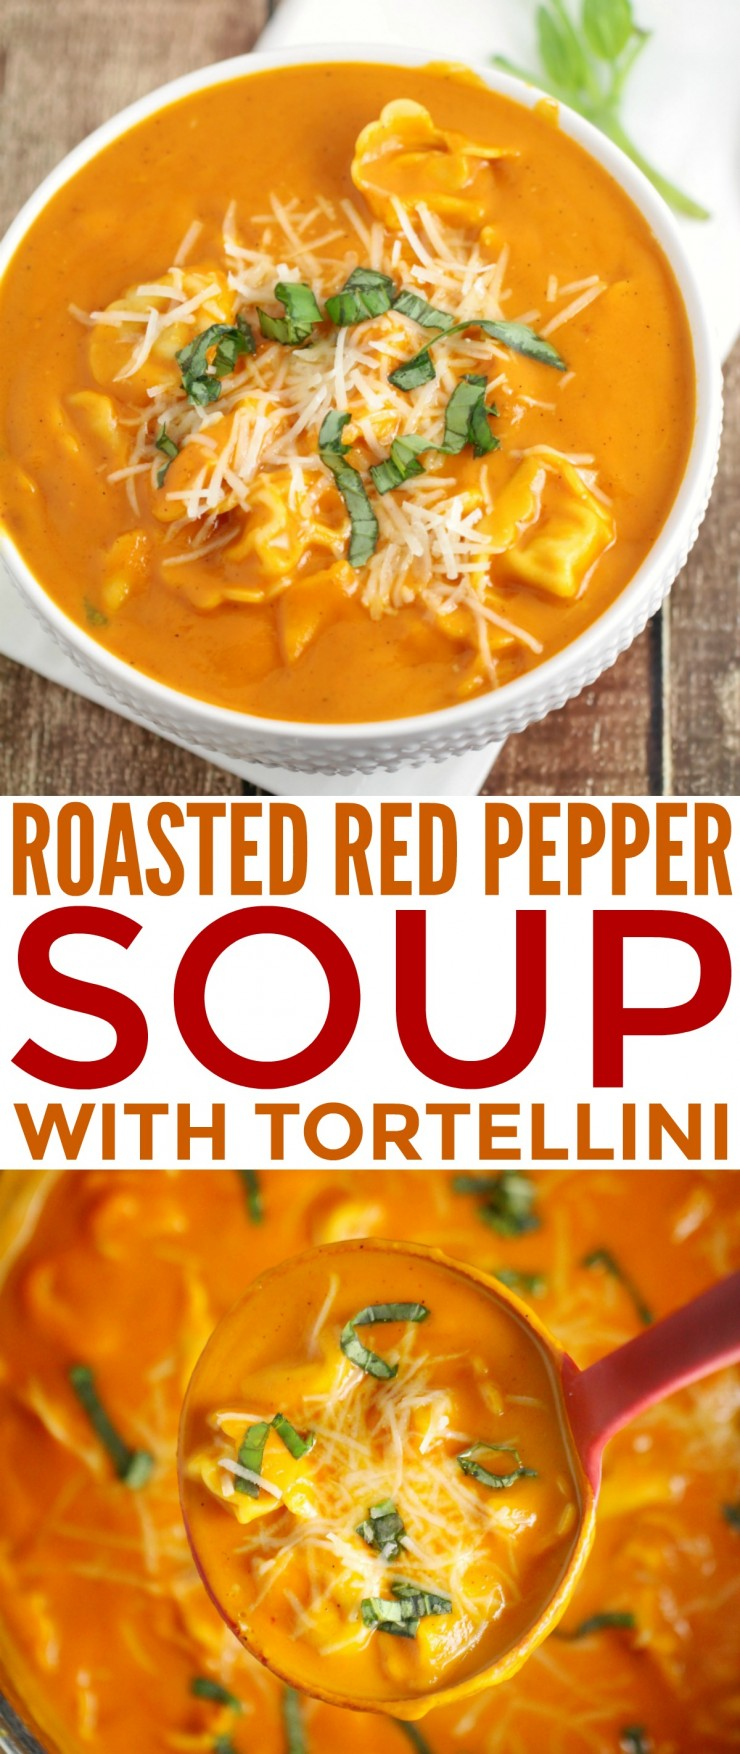 I love a delicious and comforting soup like this recipe for Roasted Red Pepper Soup with Tortellini. Freshly roasted bell peppers and garlic create an amazing savoury flavour your whole family is sure to love.